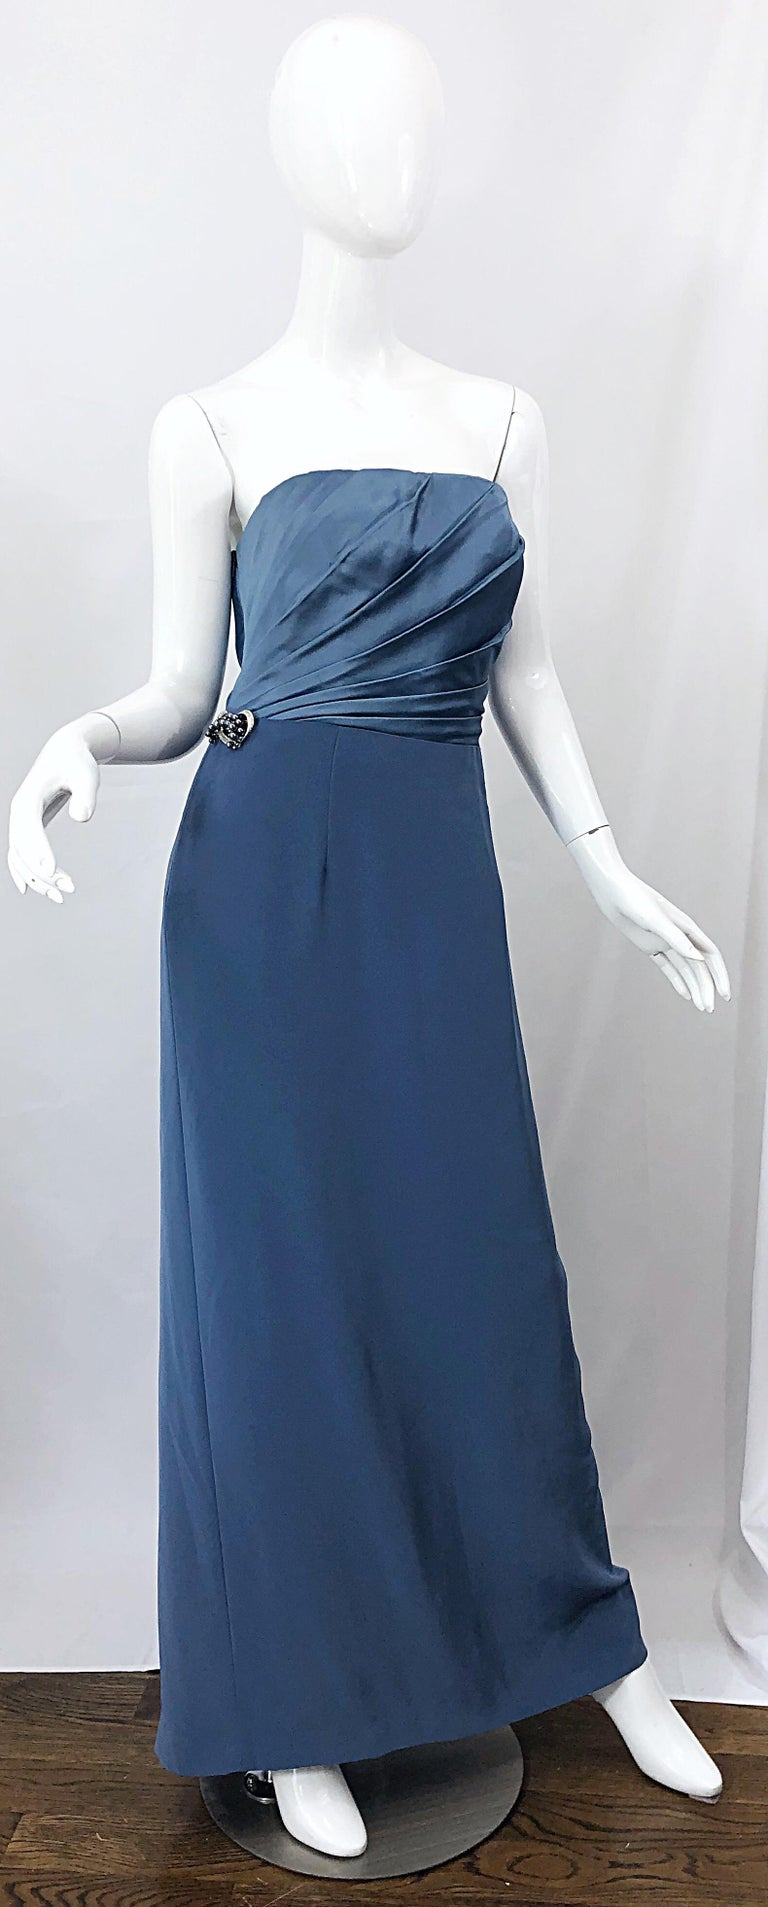 Incredible vintage 1980s BOB MACKIE blue Size 12 strapless silk crepe gown! This dress is spectacular in person! Super flattering, and the perfect shade of blue. Fully lined. Hidden zipper up the side with  hook-and-eye closure. Attached pearl,